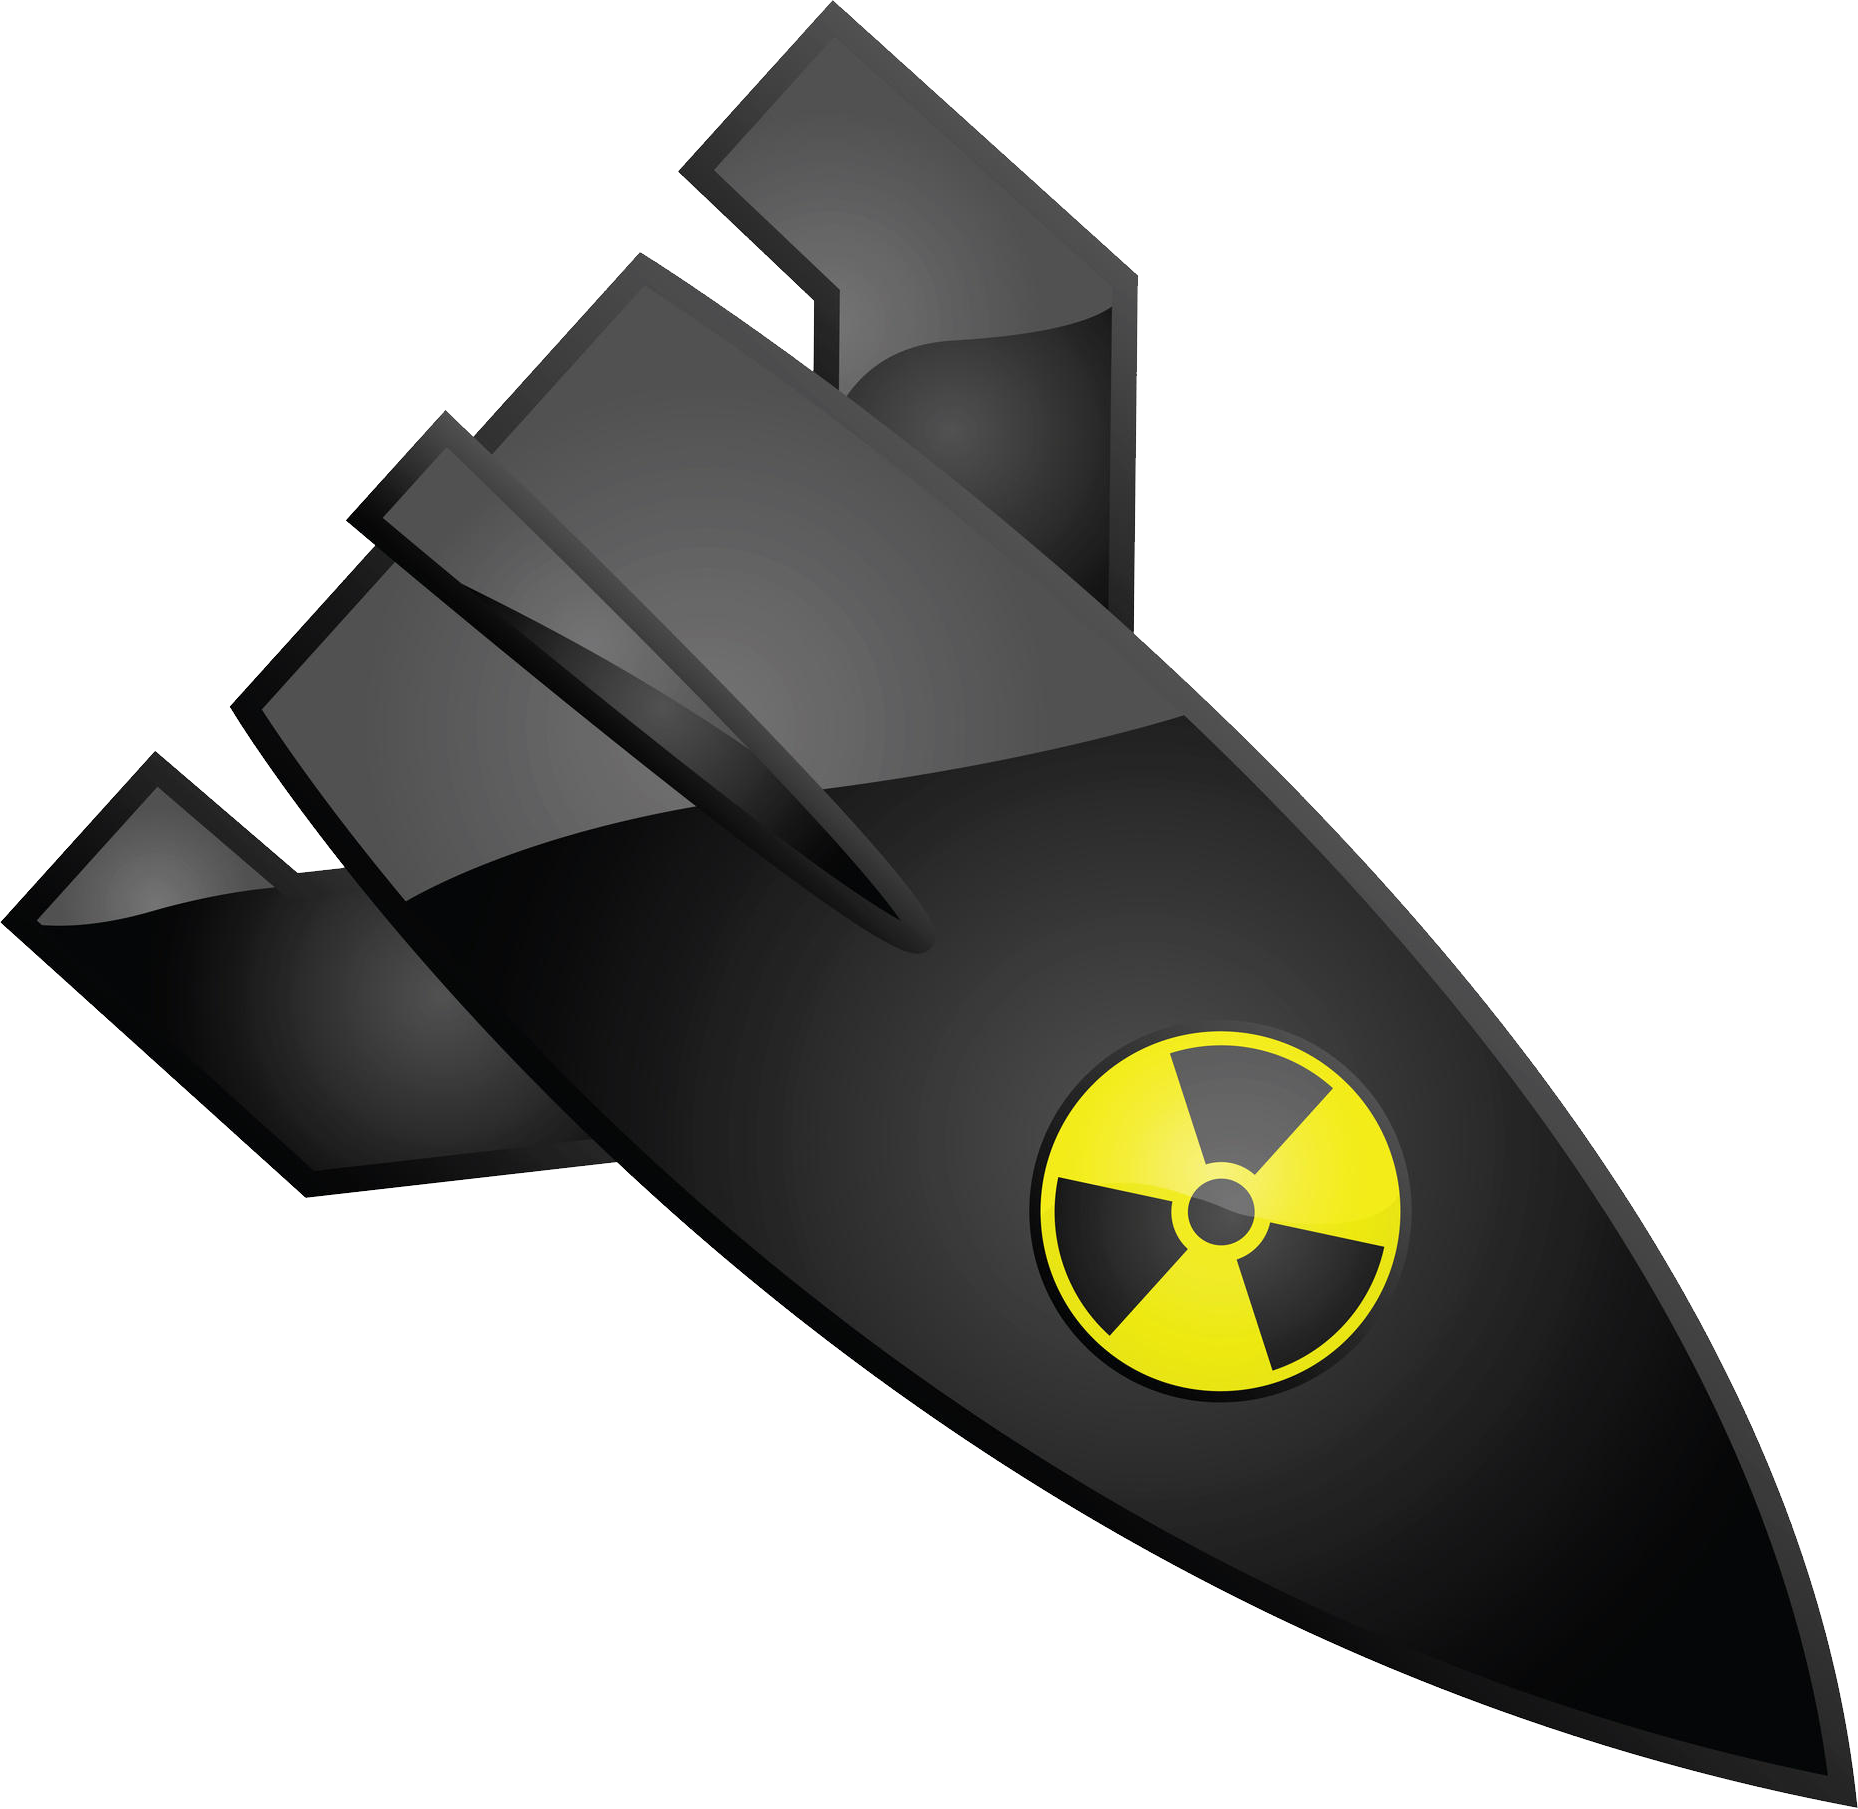 Nuclear bomb PNG images free download